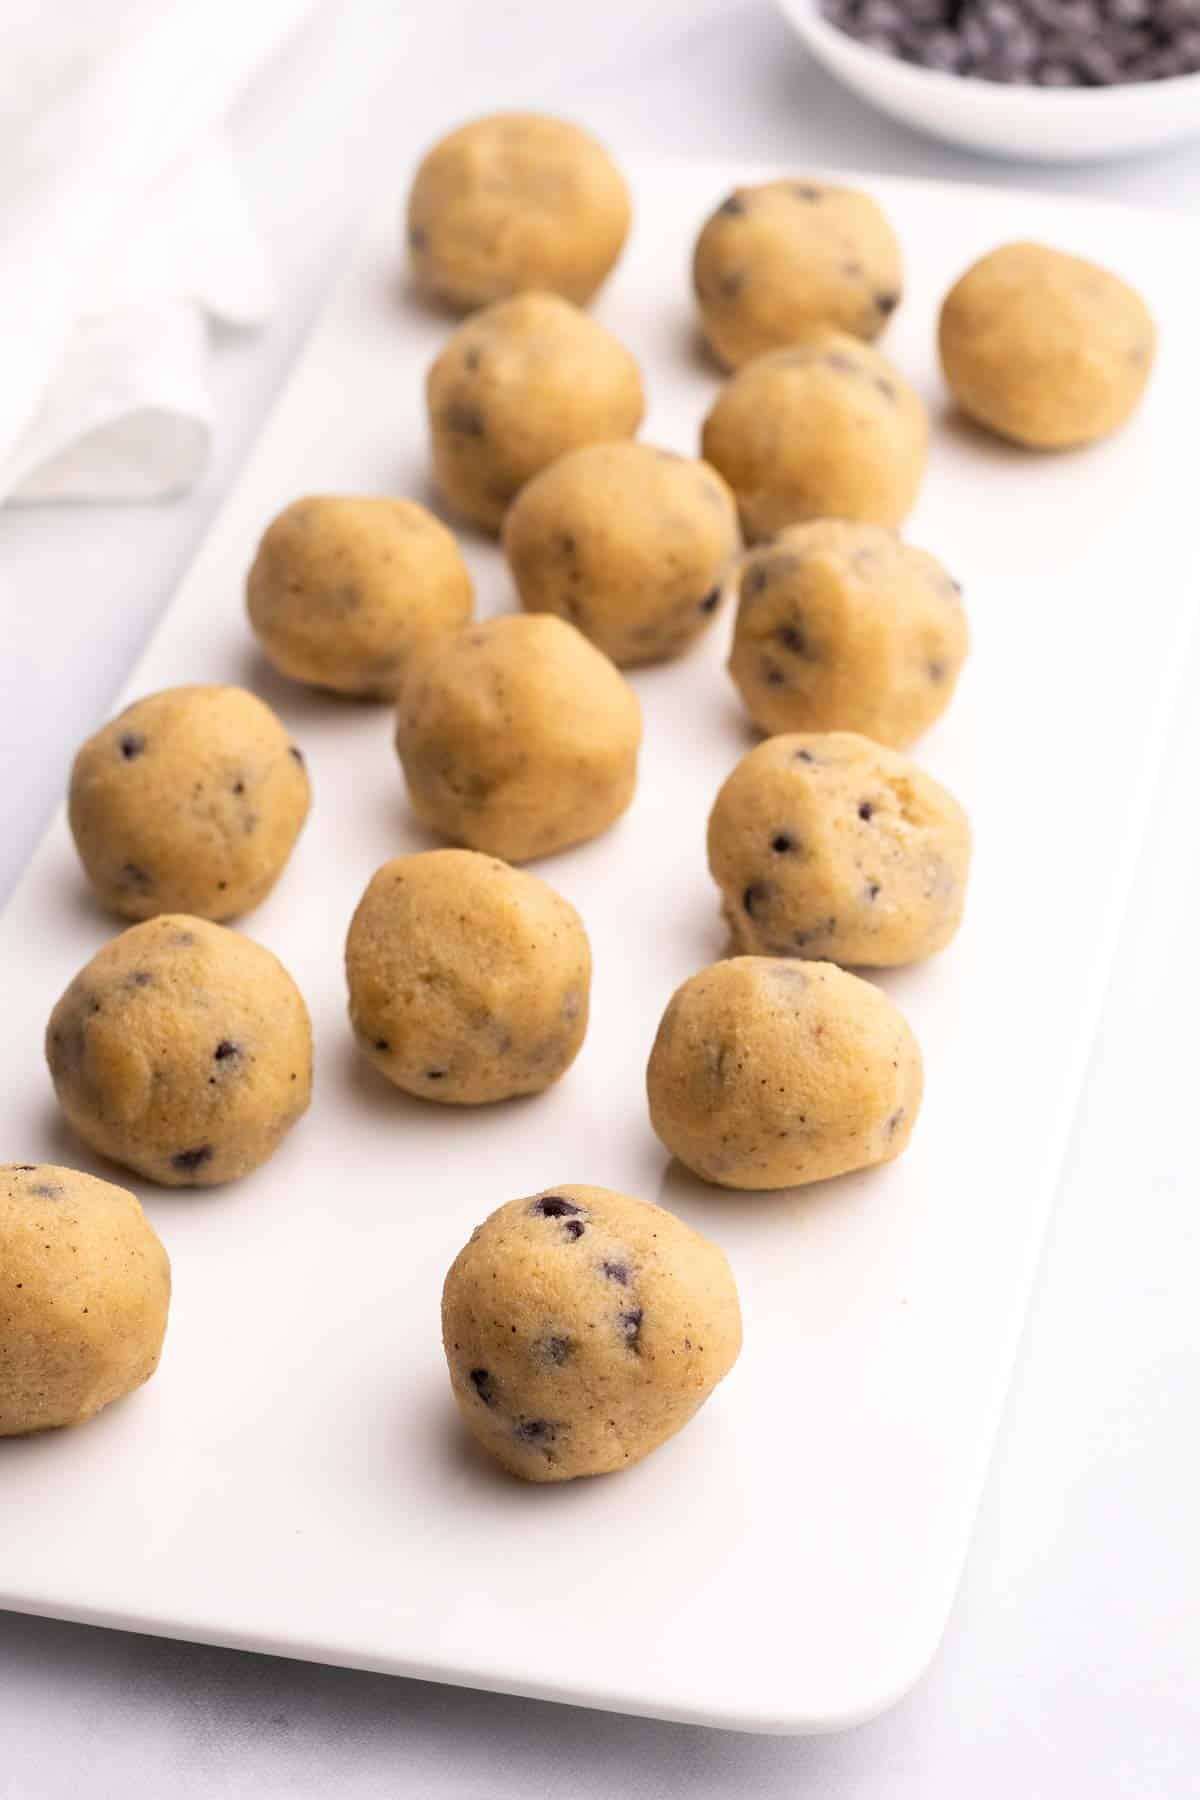 Cookie dough balls on a white serving tray